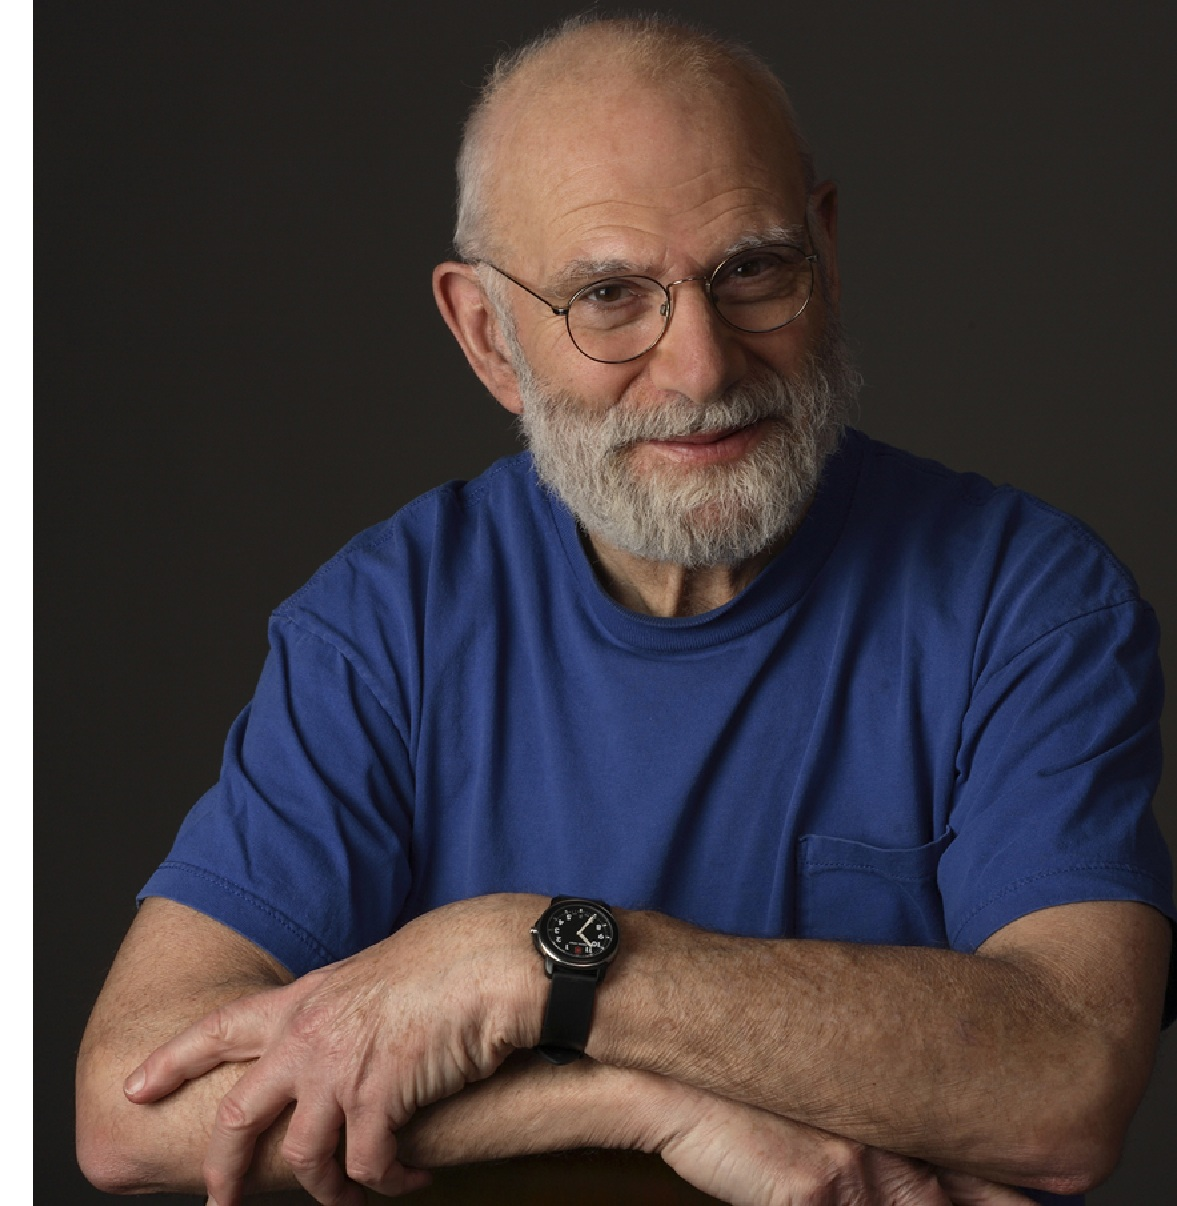 oliver sacks essays Oliver sacks is a physician, best-selling author, and professor of neurology at the nyu school of medicine he is the author of many books, including musicophilia, awakenings, and the man who mistook his wife for a hat.